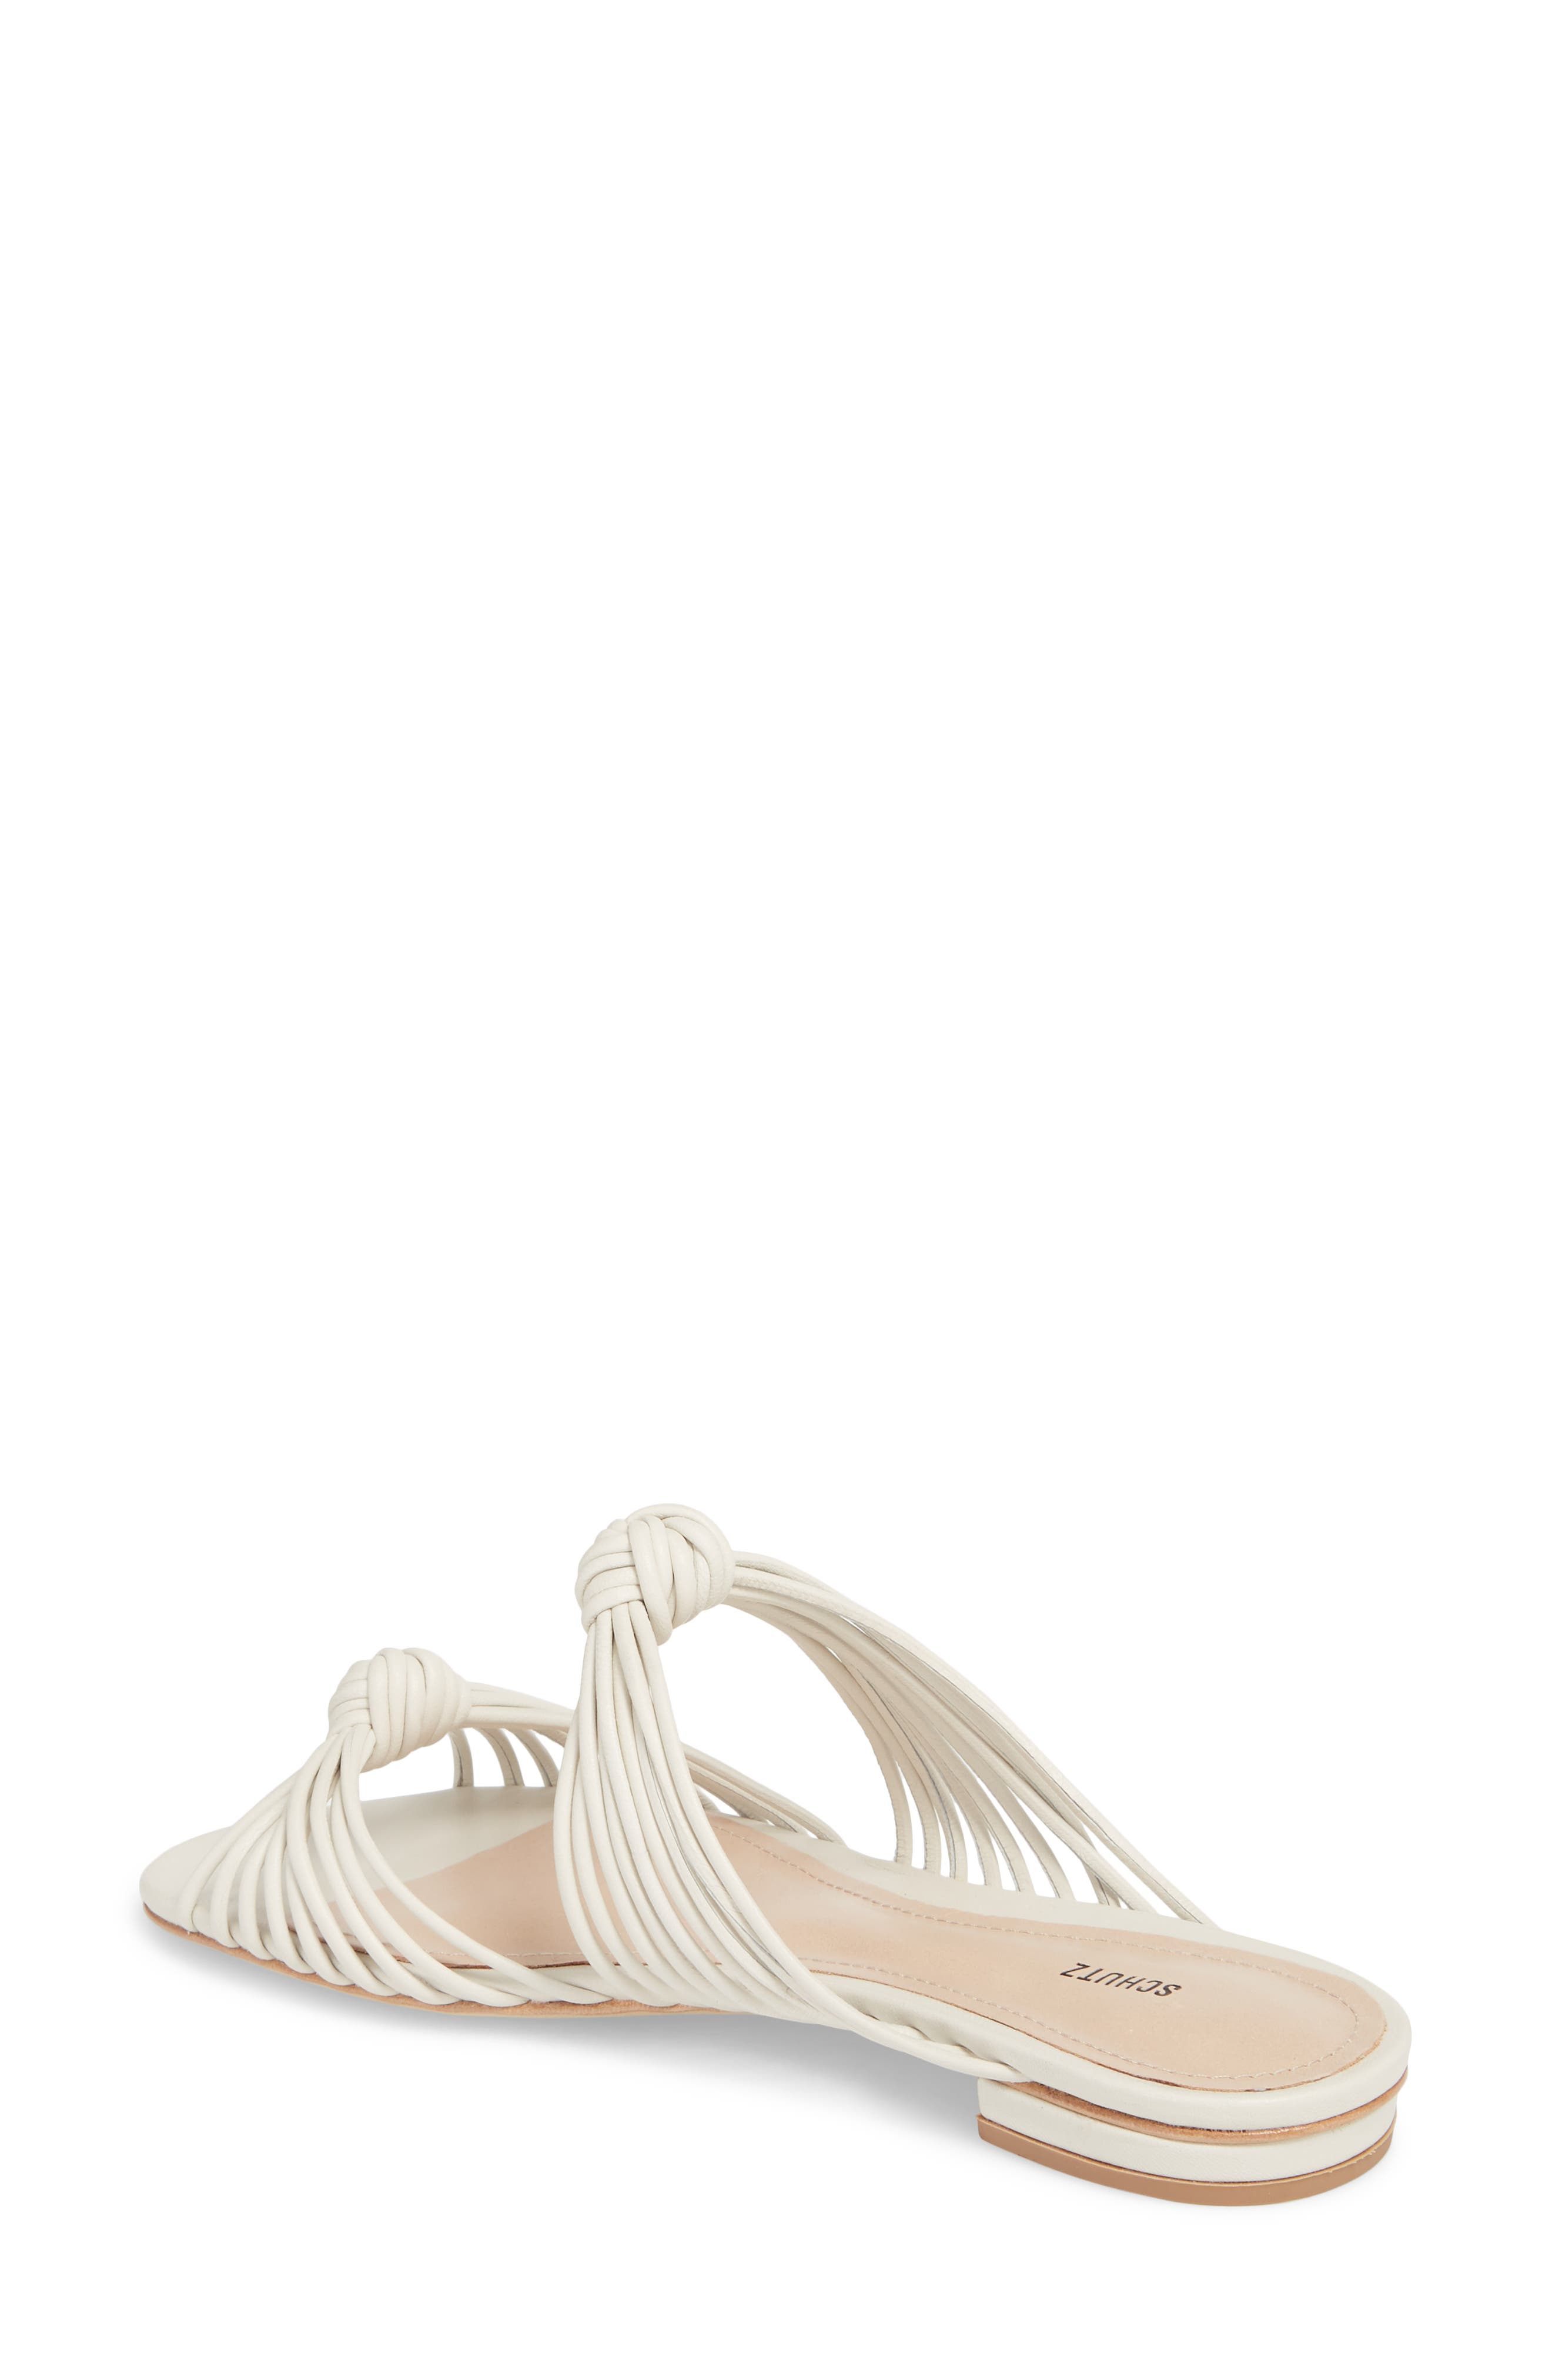 Nitiely Slide Sandal,                             Alternate thumbnail 2, color,                             Pearl Fabric